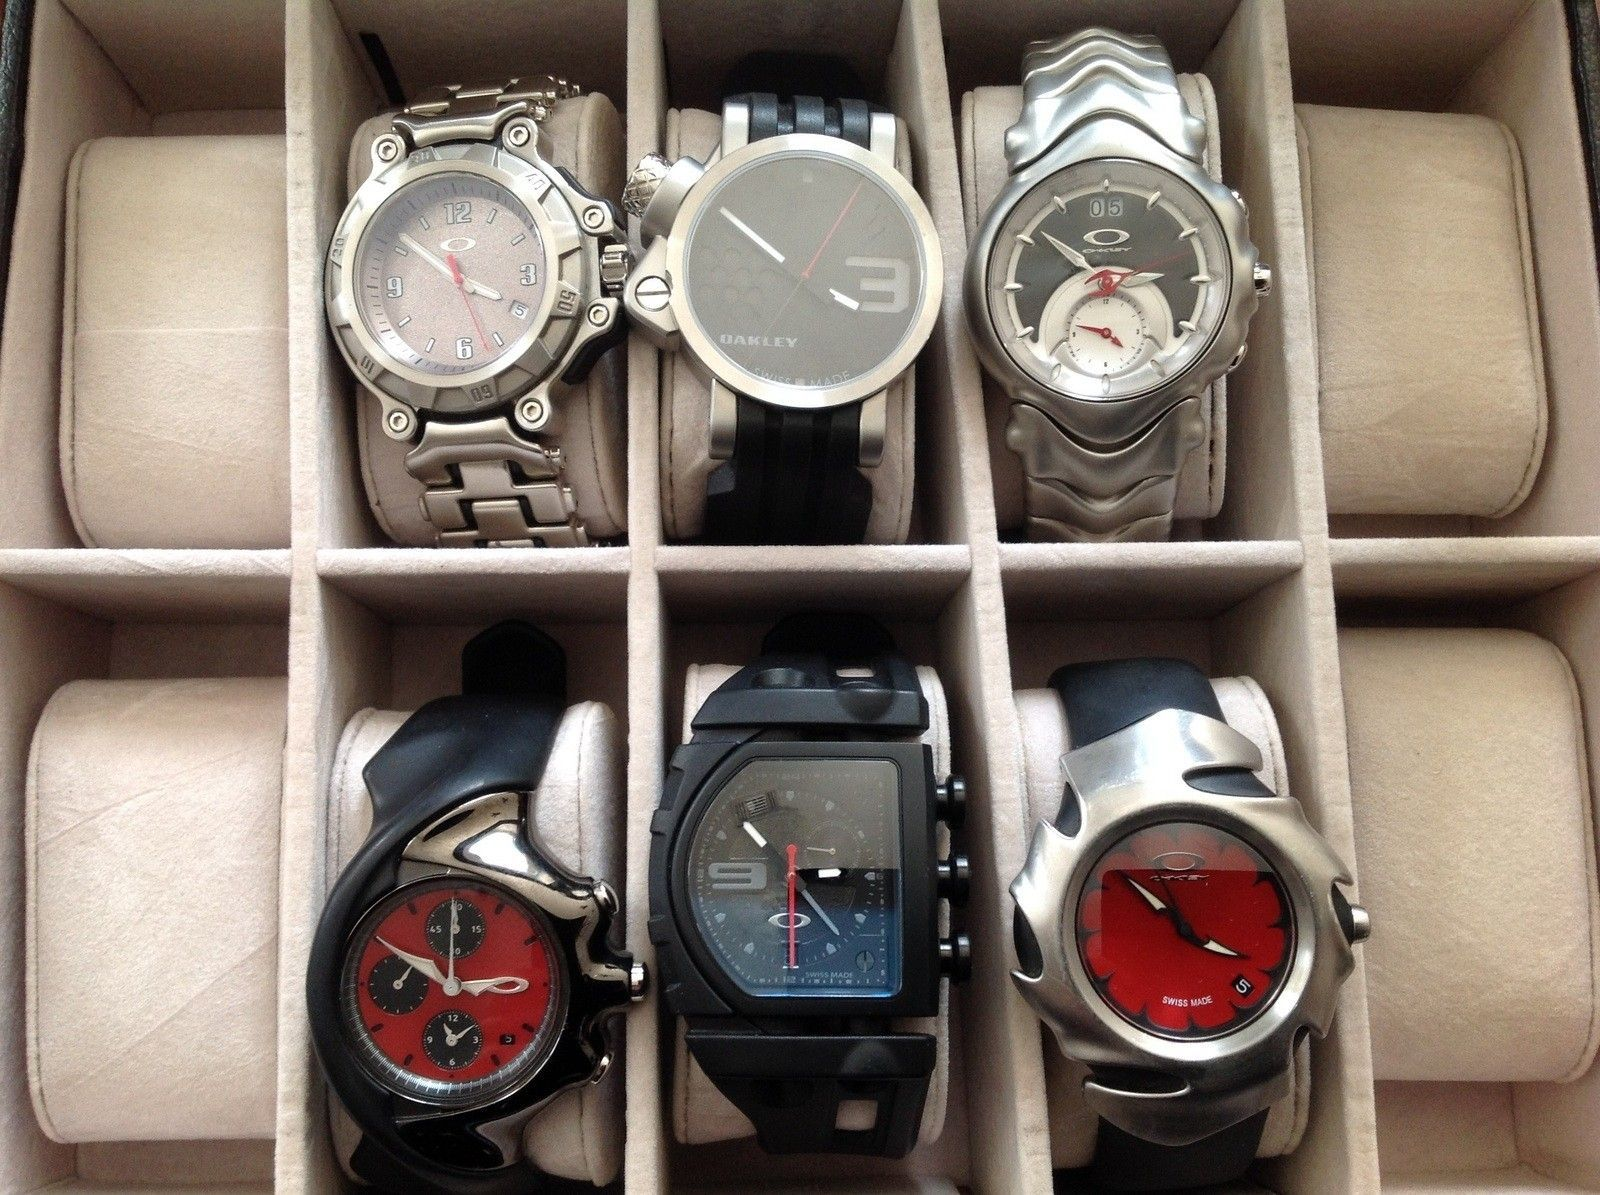 New photo of the watch collection - image.jpg